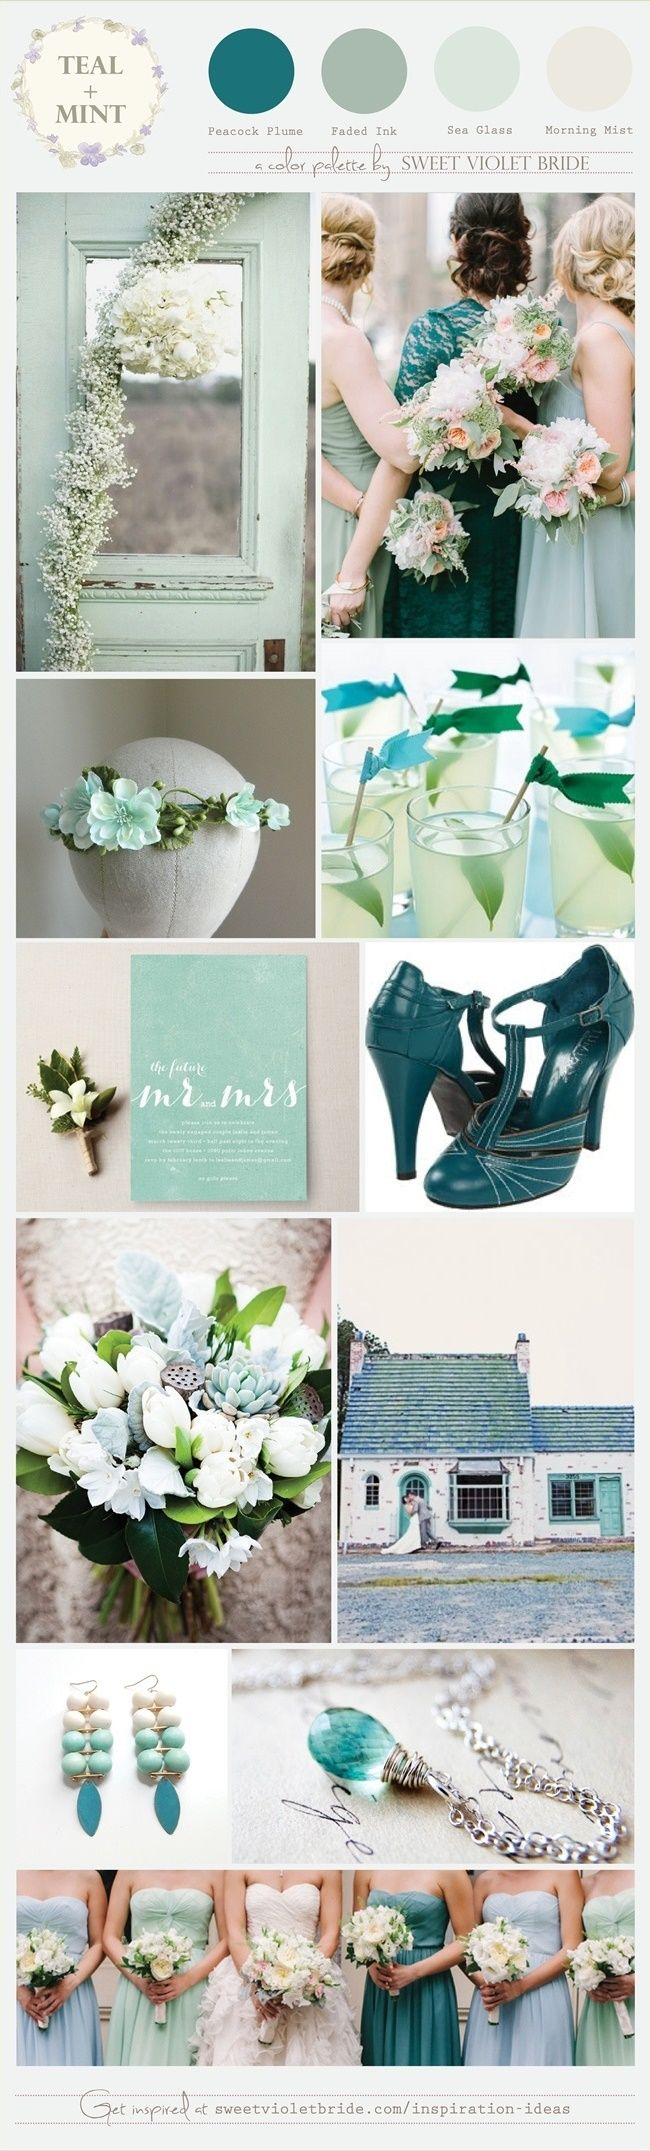 Wedding Colour Palette: Teal + Mint they pair beautifully simply with each